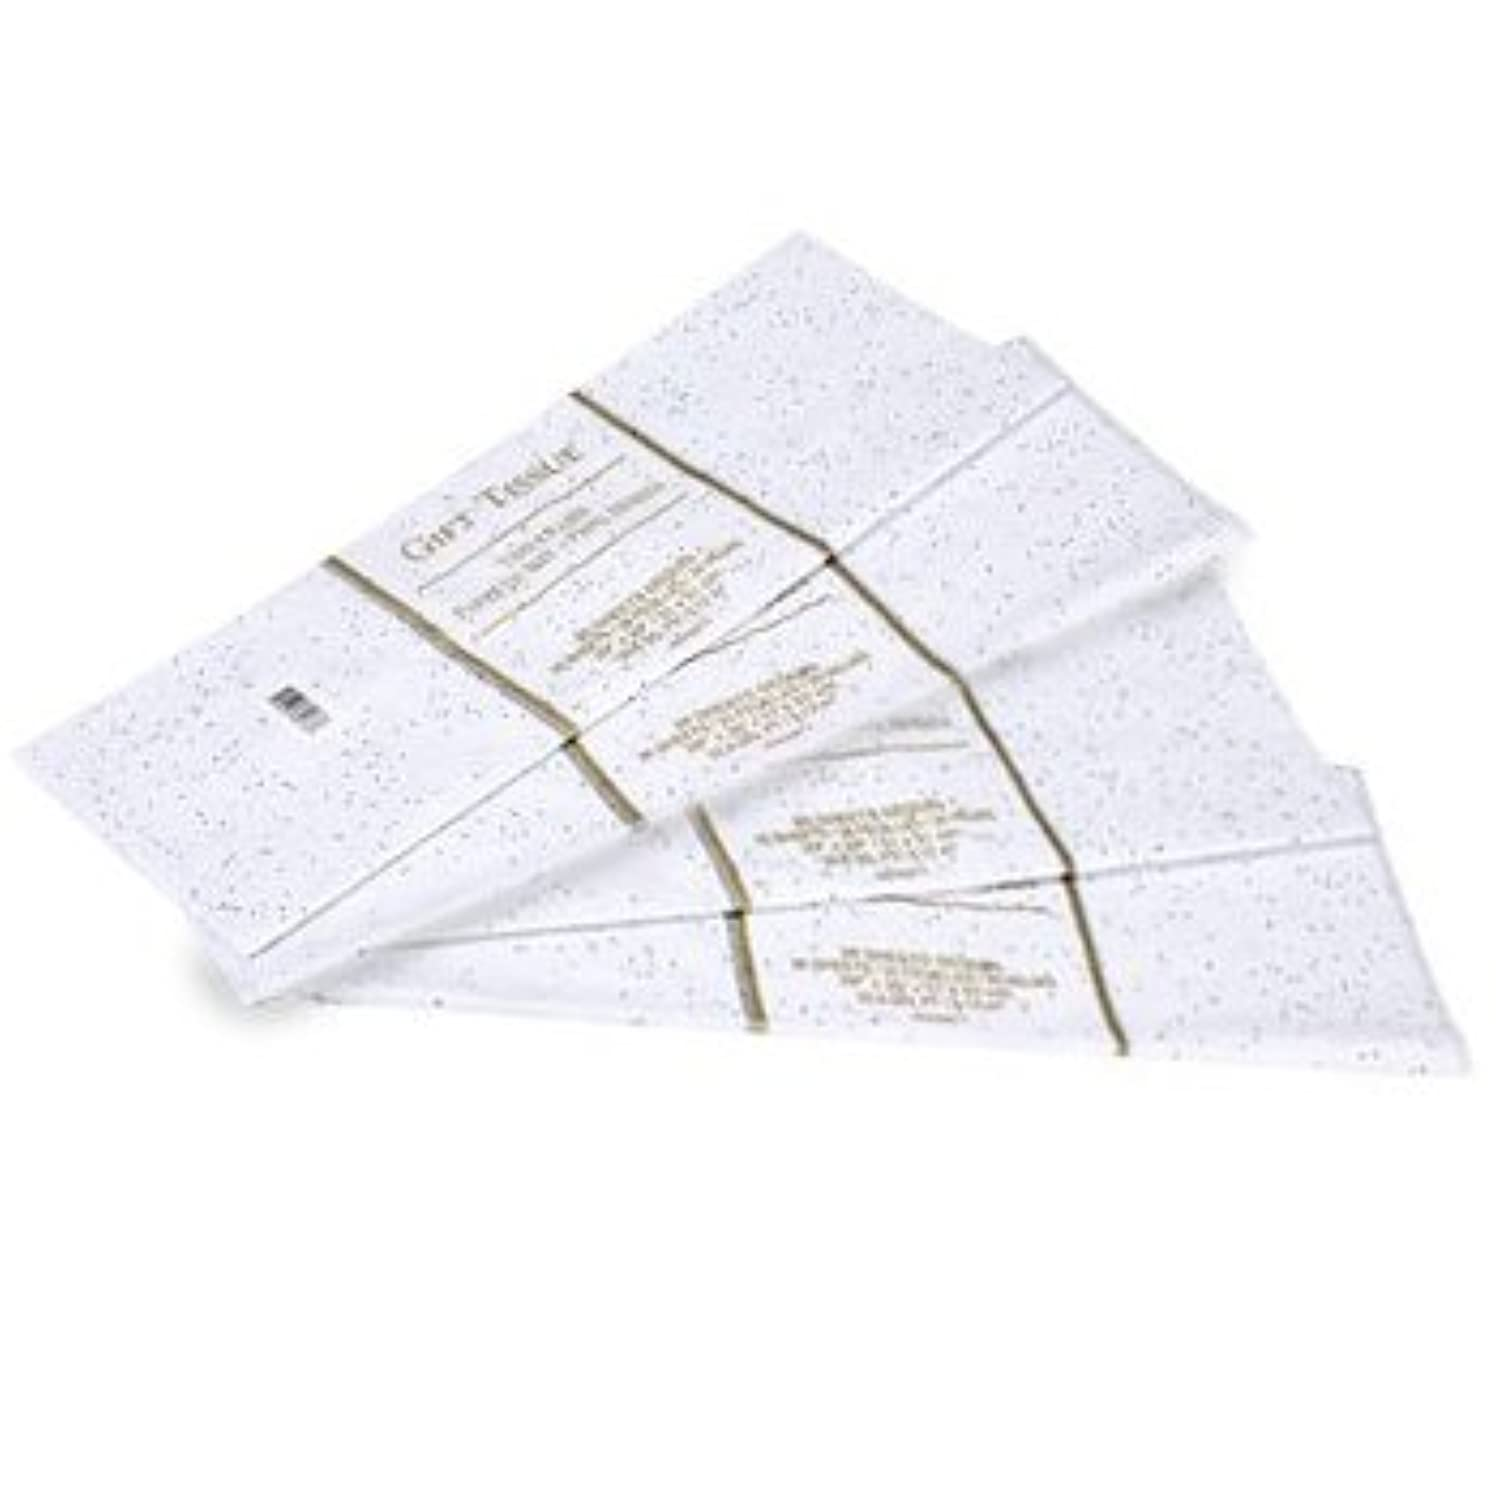 Gift Wrap Bag Tissue Paper White Foil Sequin Sparkle 40 Sheets 20 x 20 Inches